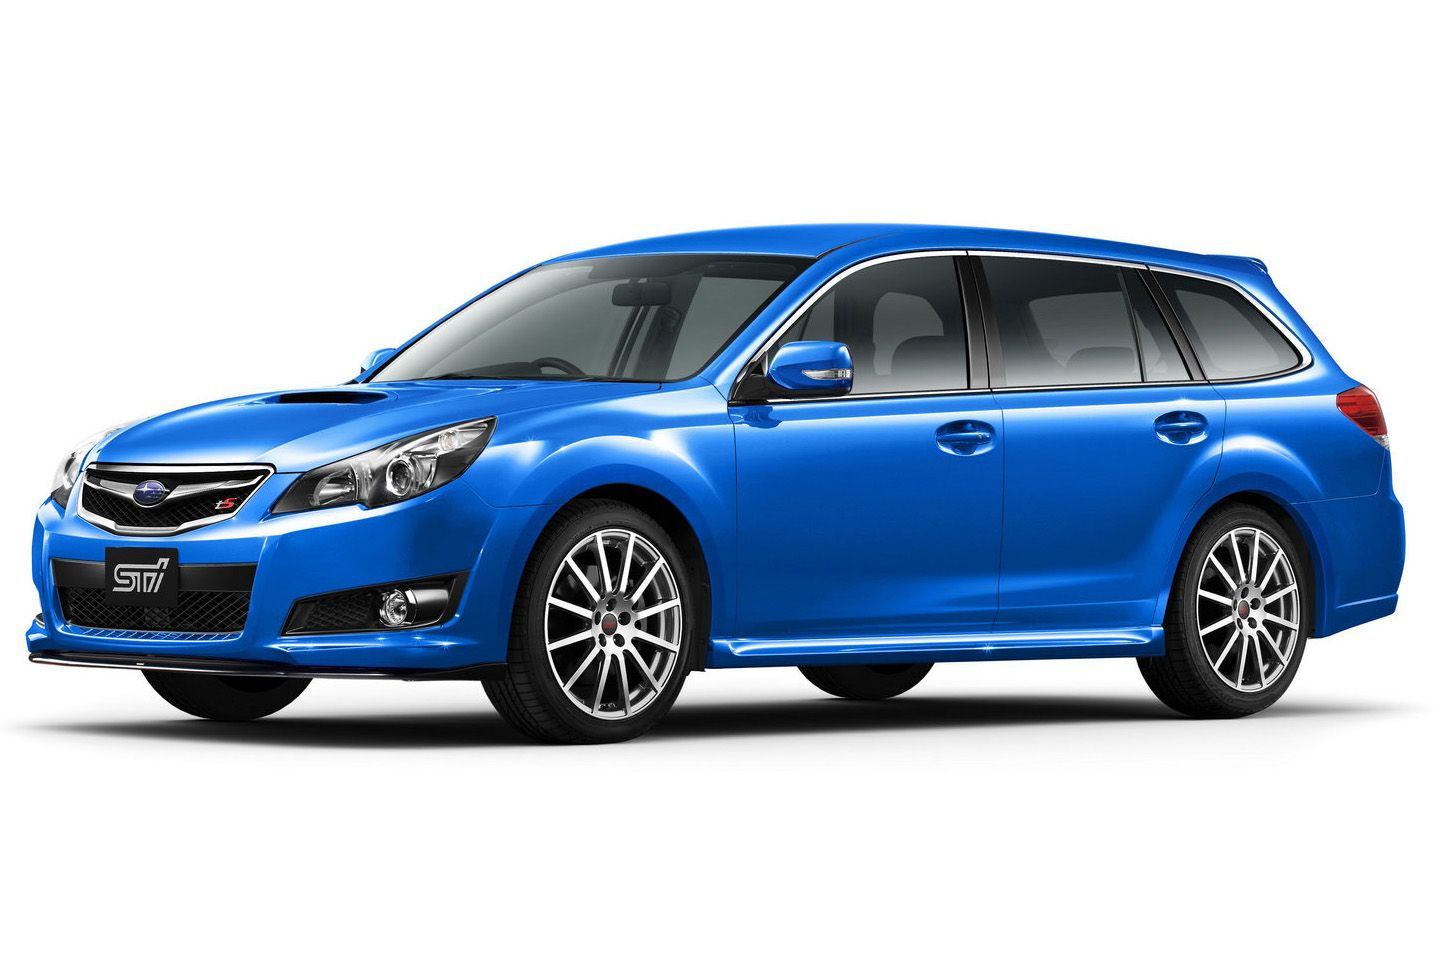 Sti tuned subaru legacy ts released in japan